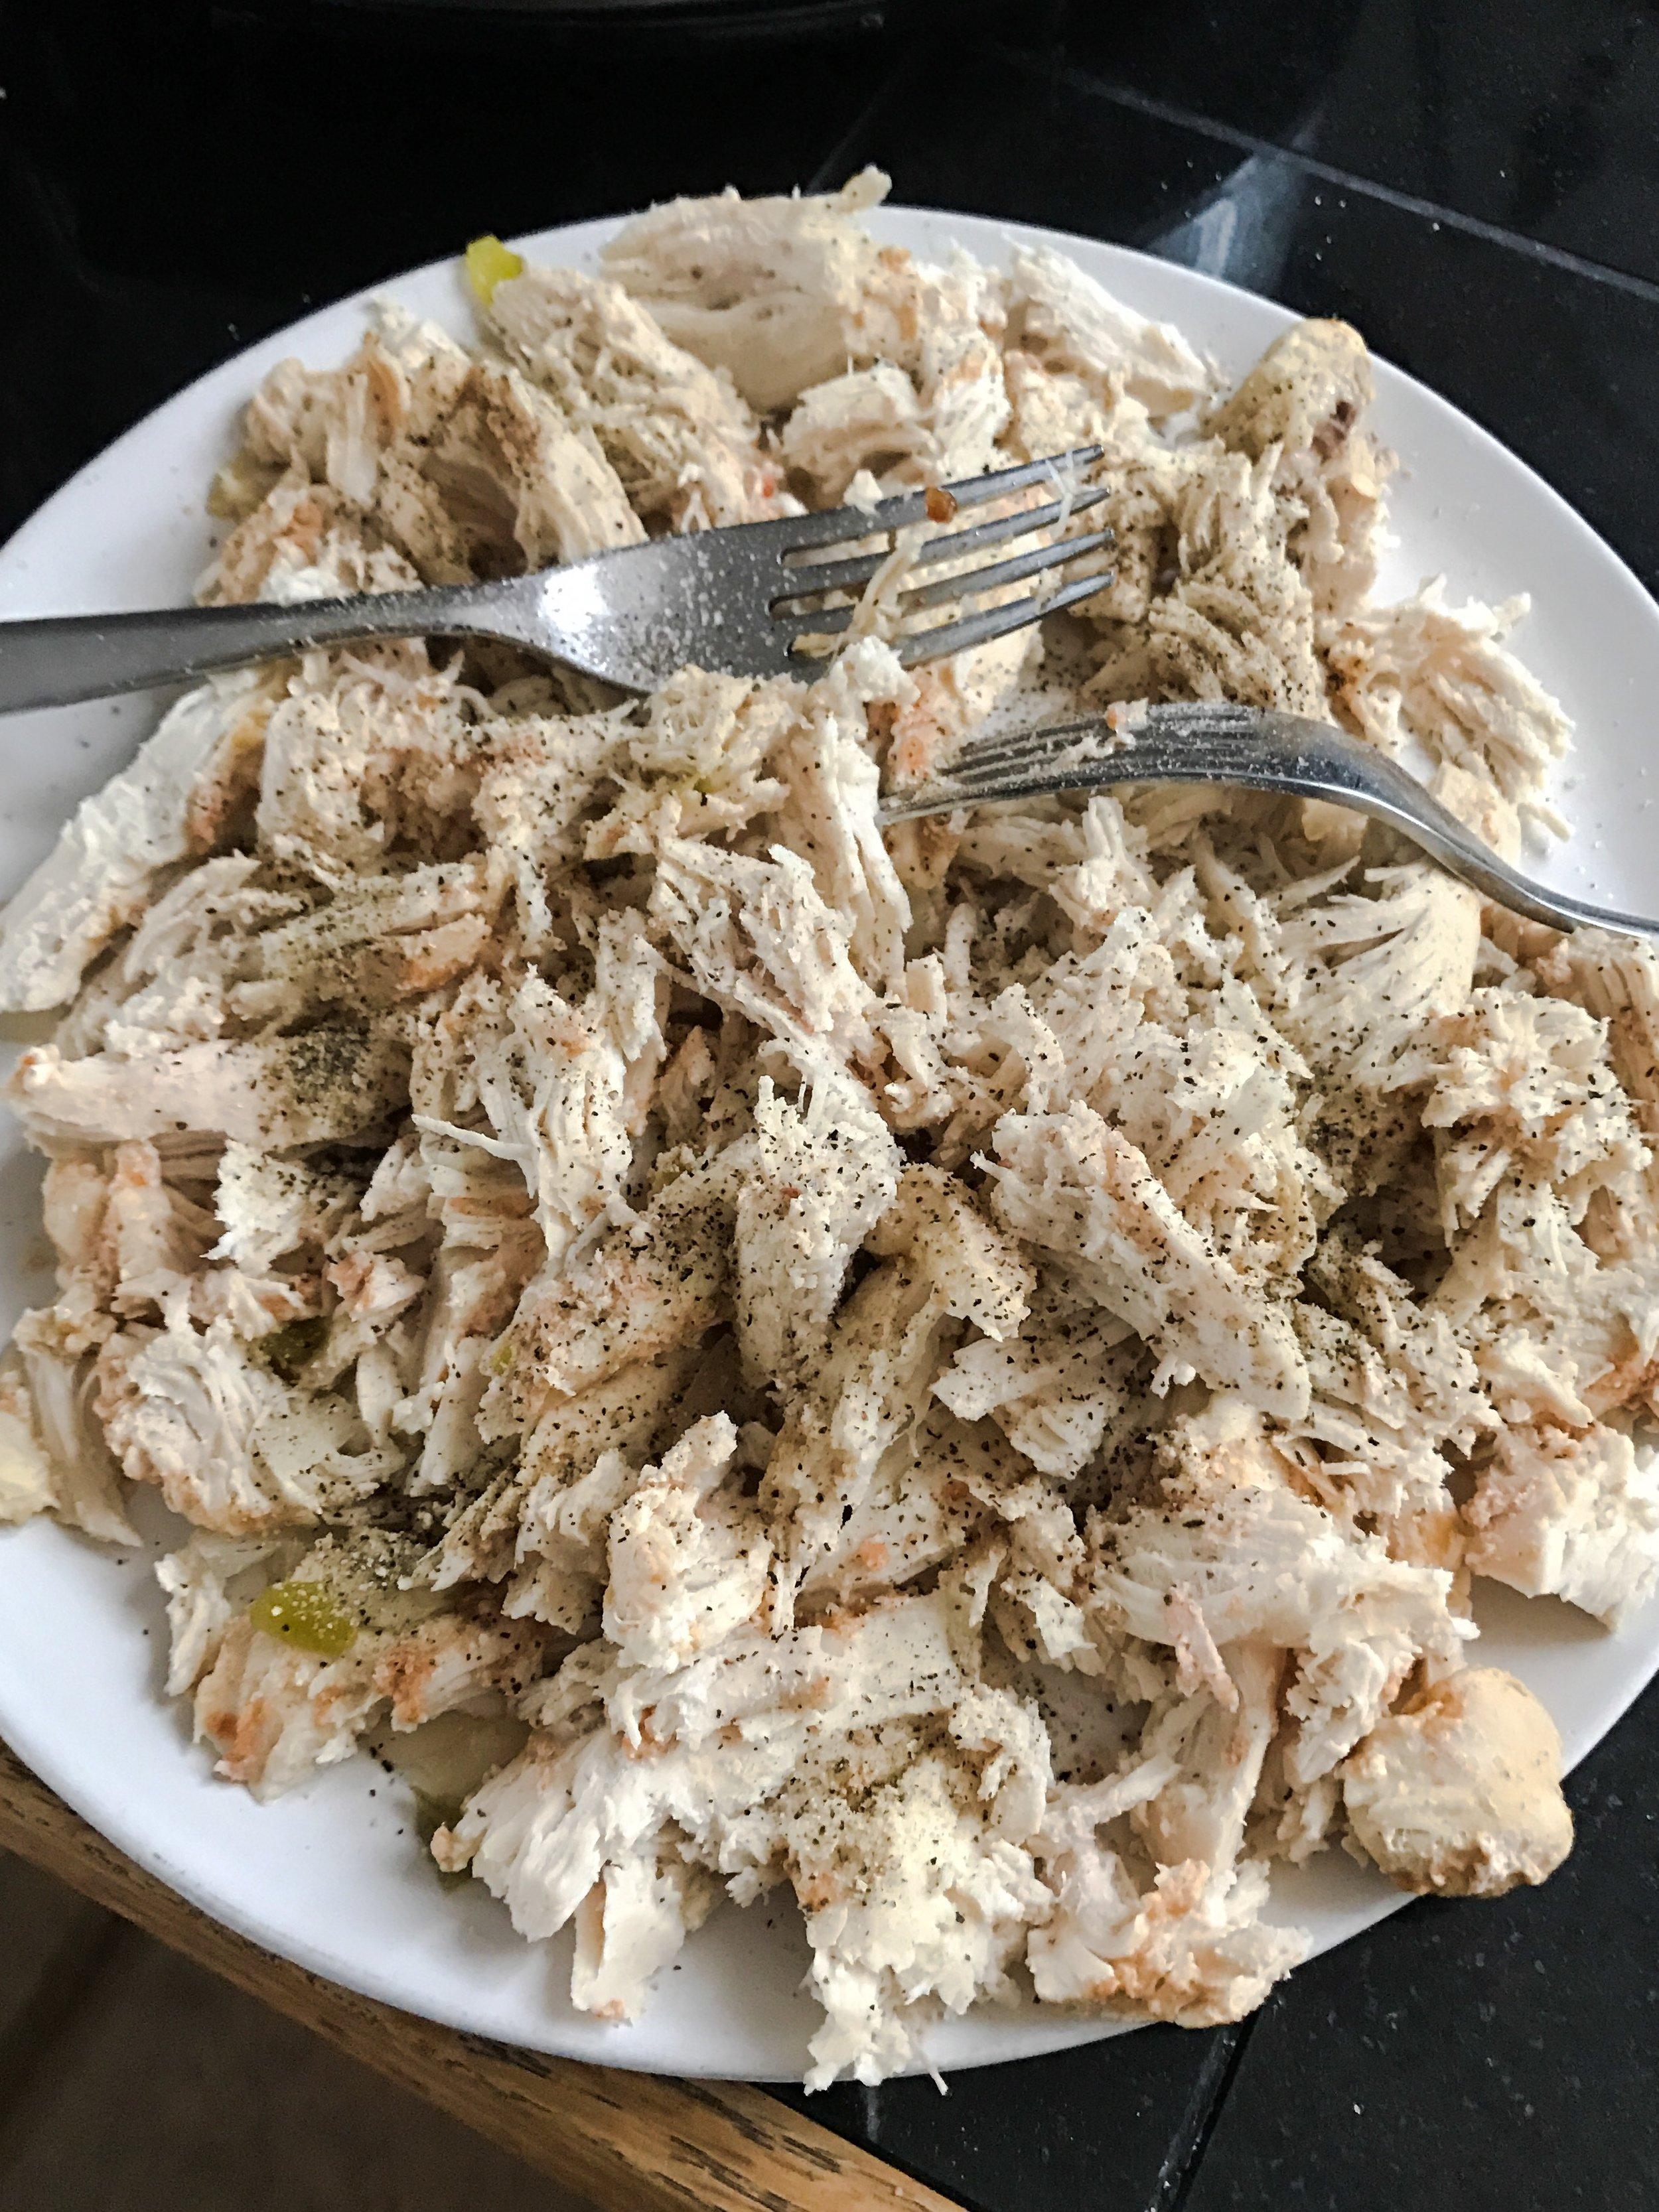 Shred your chicken and don't forget to add pink salt and pepper before putting it back in the crock pot!